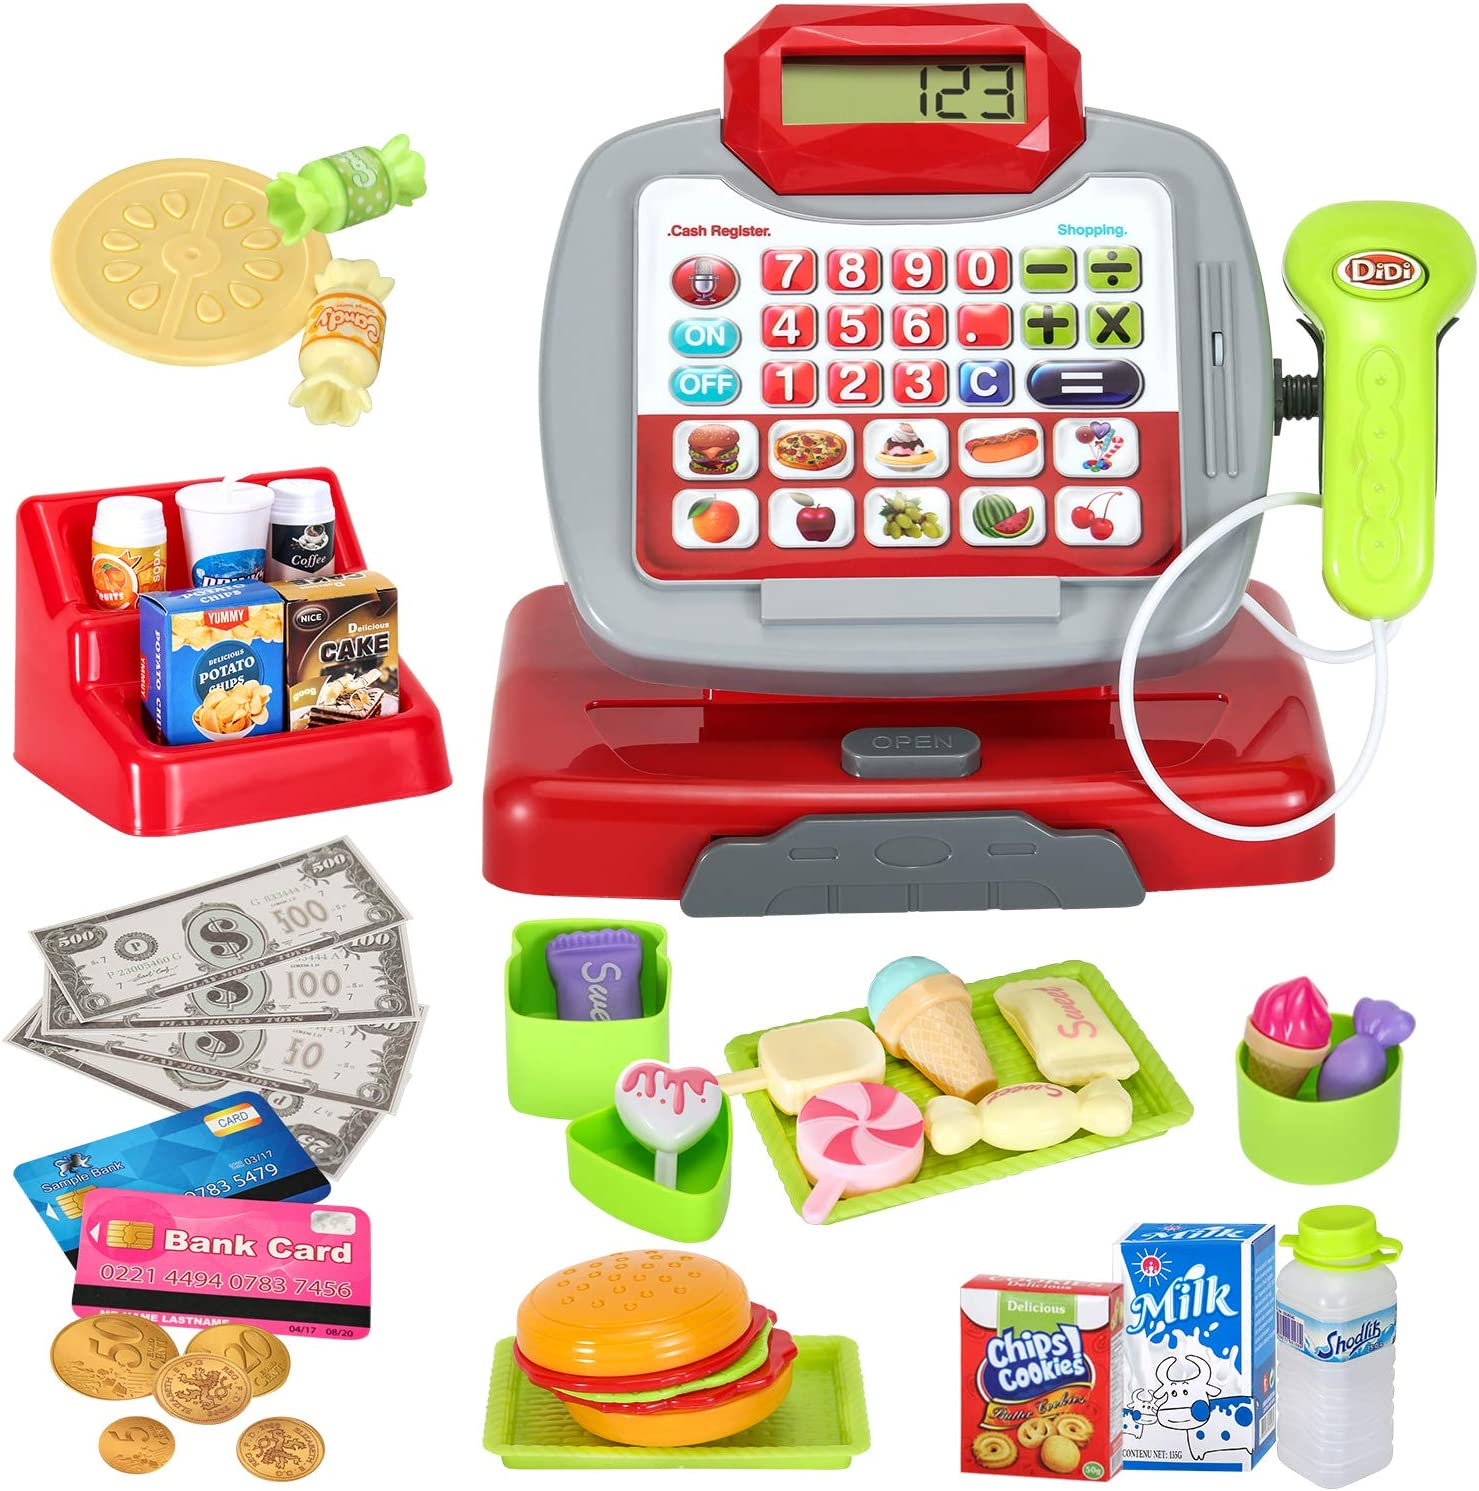 FUNTECH Pretend & Play, Calculator Cash Register with Real Scanner, Microphone, Play Food, Mini Supermarket Cashier, Great Pre-School Gift for Kids, Toddlers, Boys & Girls, Ages 3+